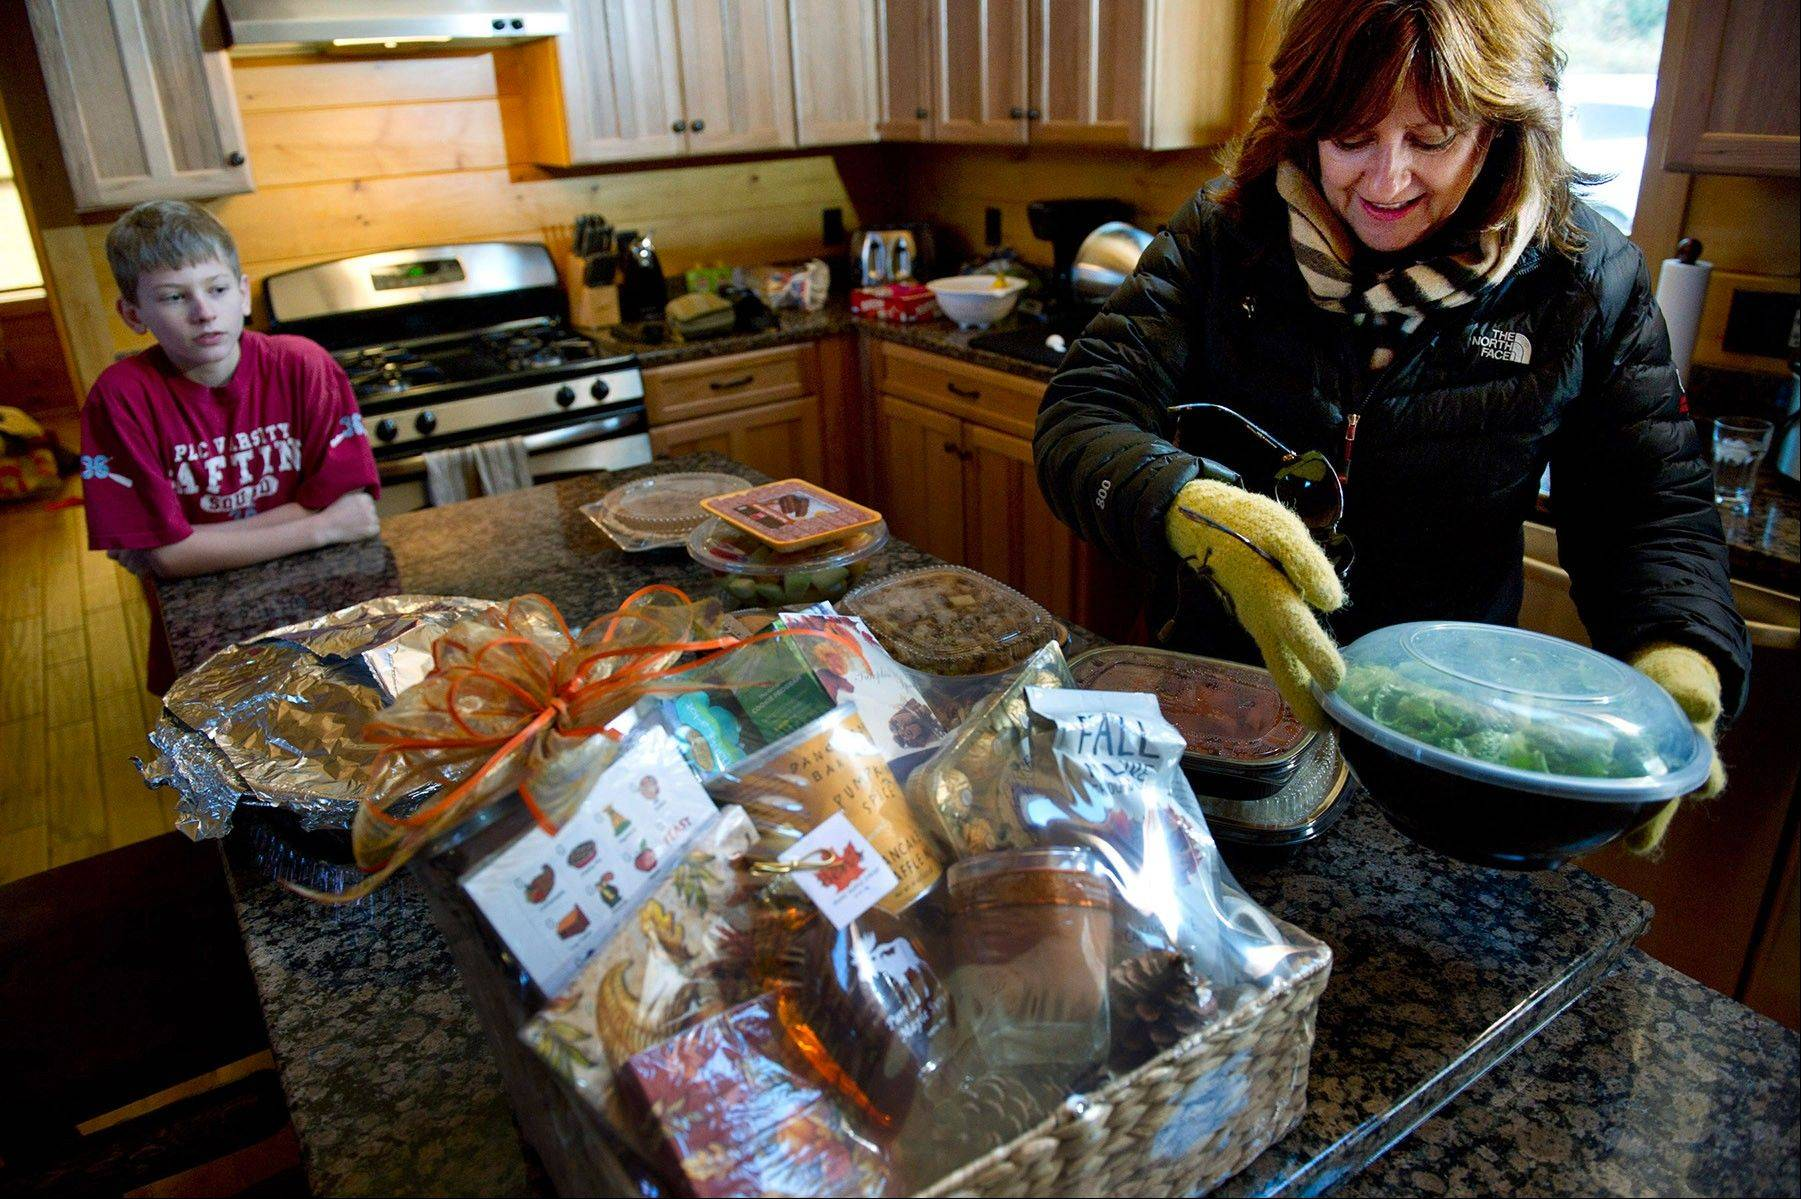 At Boulder Crest Retreat in Bluemont, Va., Julia Falke delivers a Thanksgiving meal to the family of Lucas Zajdel, left, whose mother was in the Air Force and stepfather is in the Navy. The retreat, founded by Falke and her husband Ken Falke, serves wounded military service personnel and veterans.